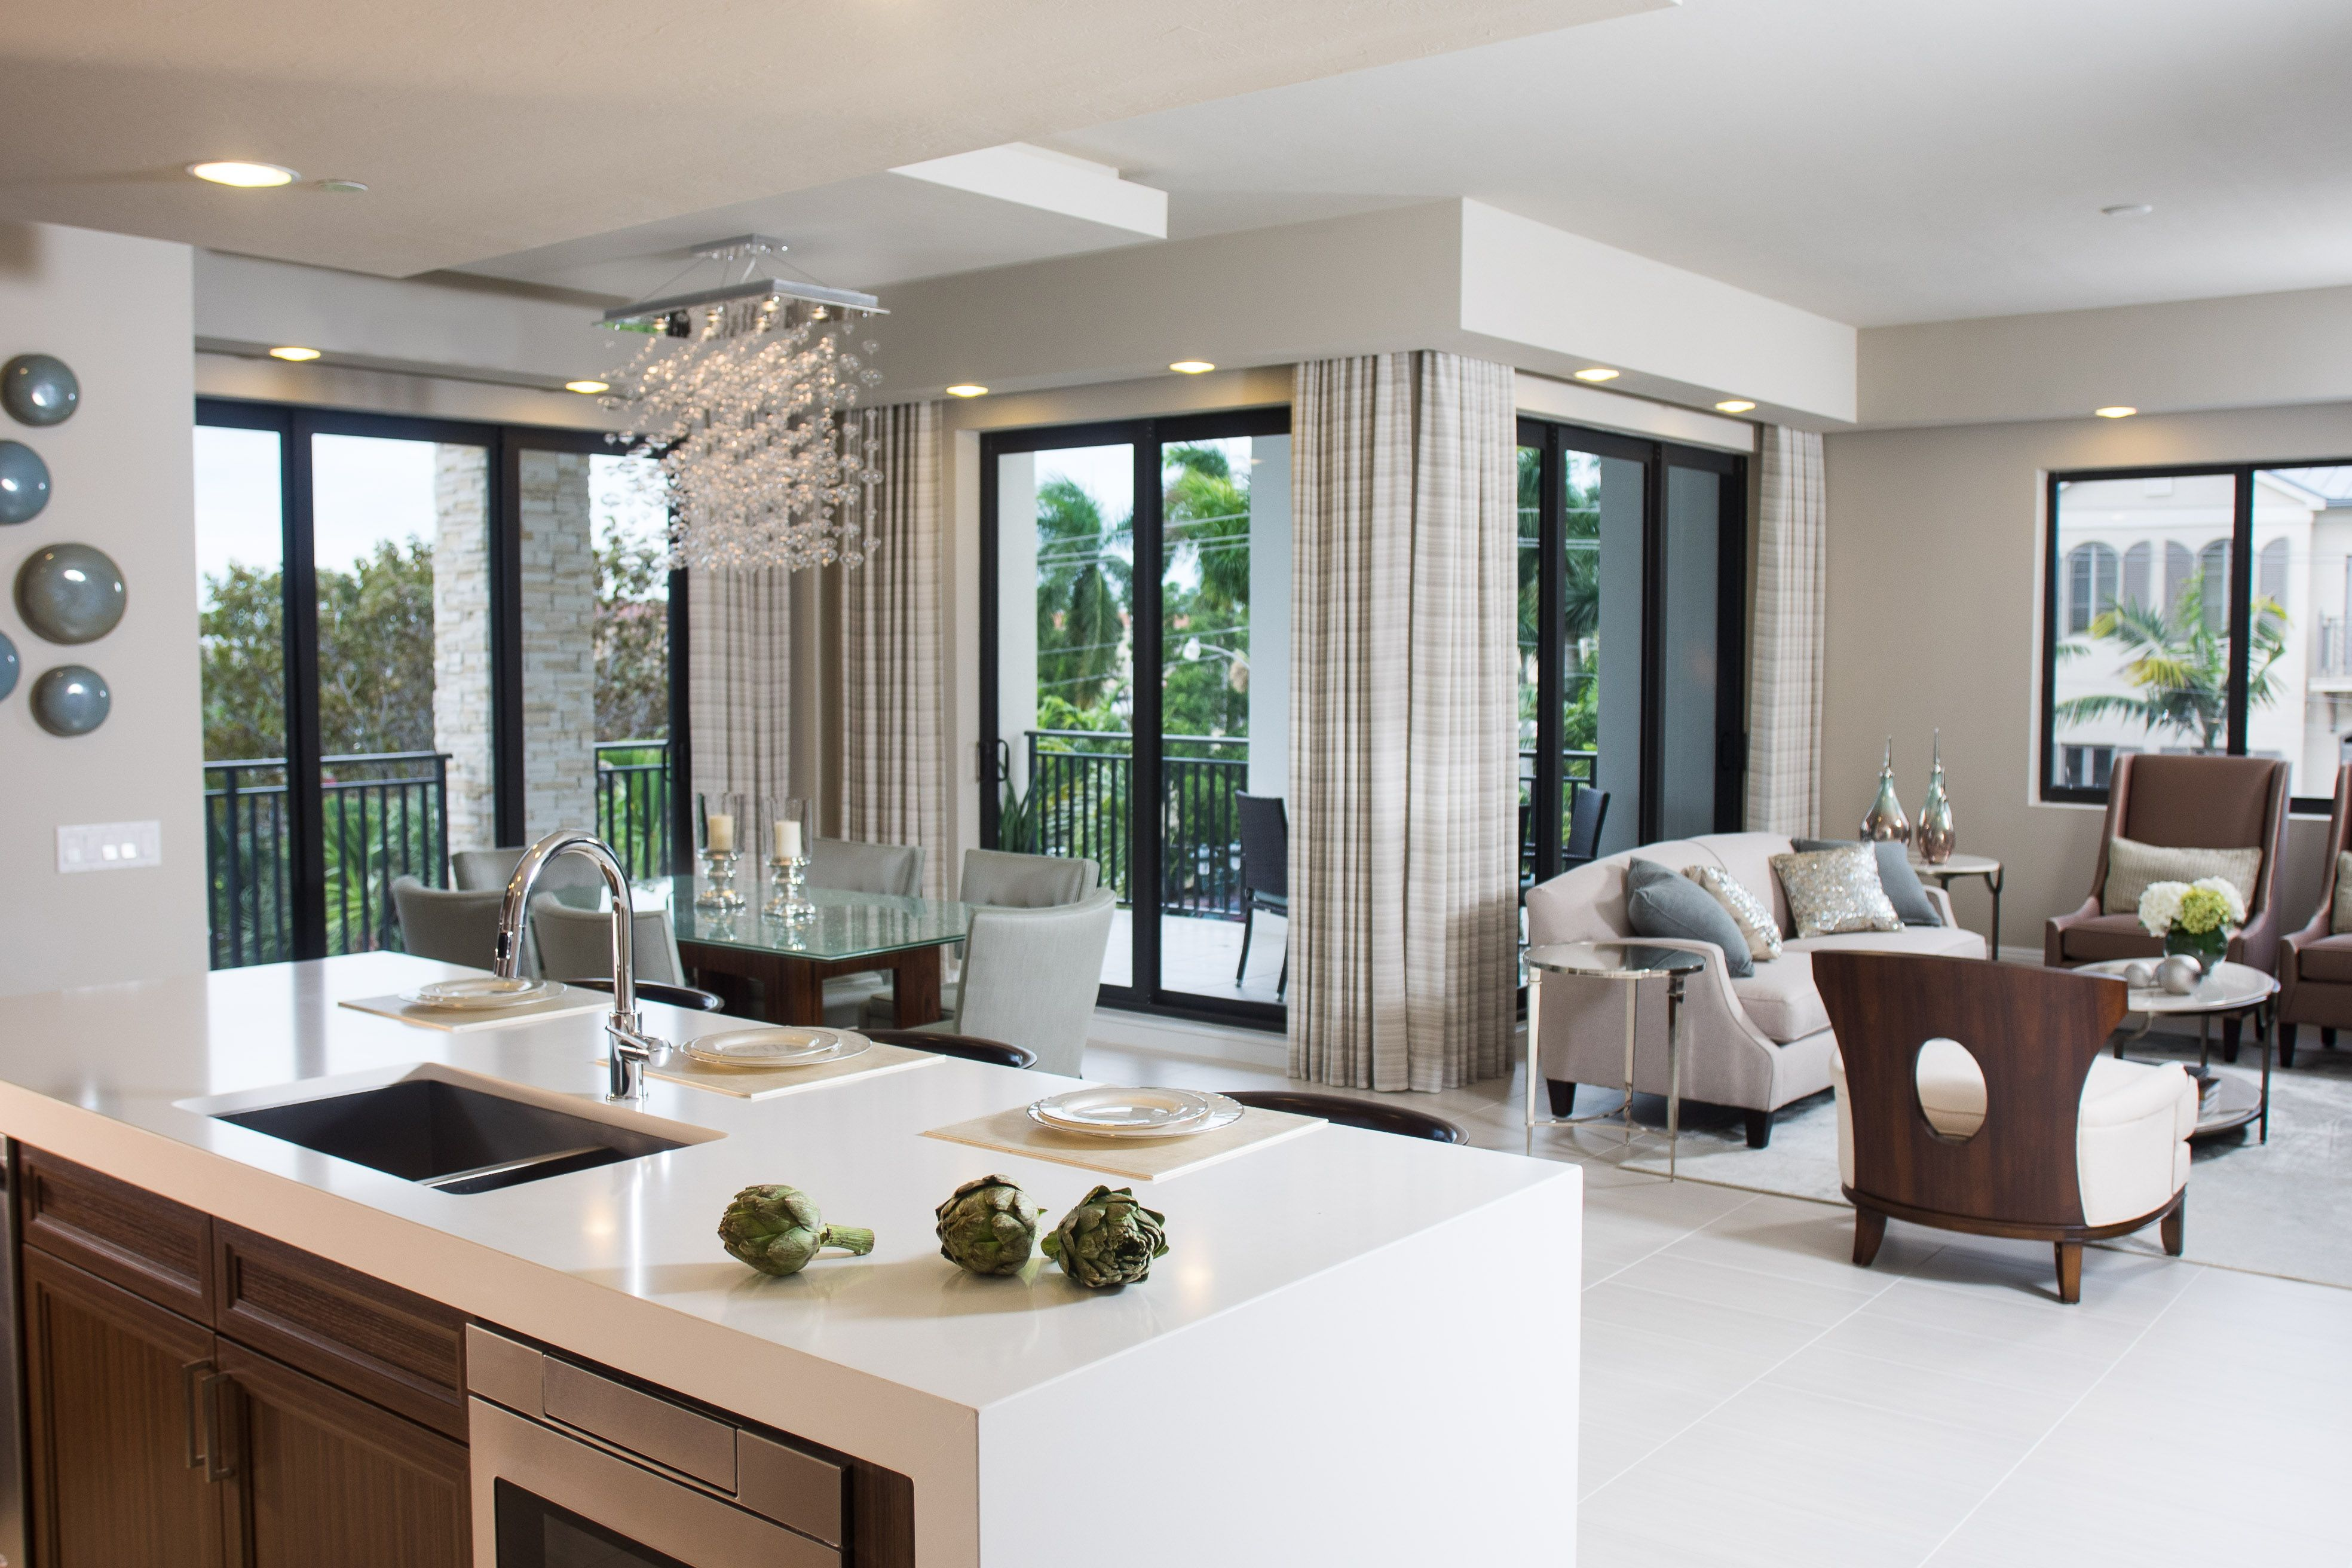 dennison model at naples square interior design by claudia baer of